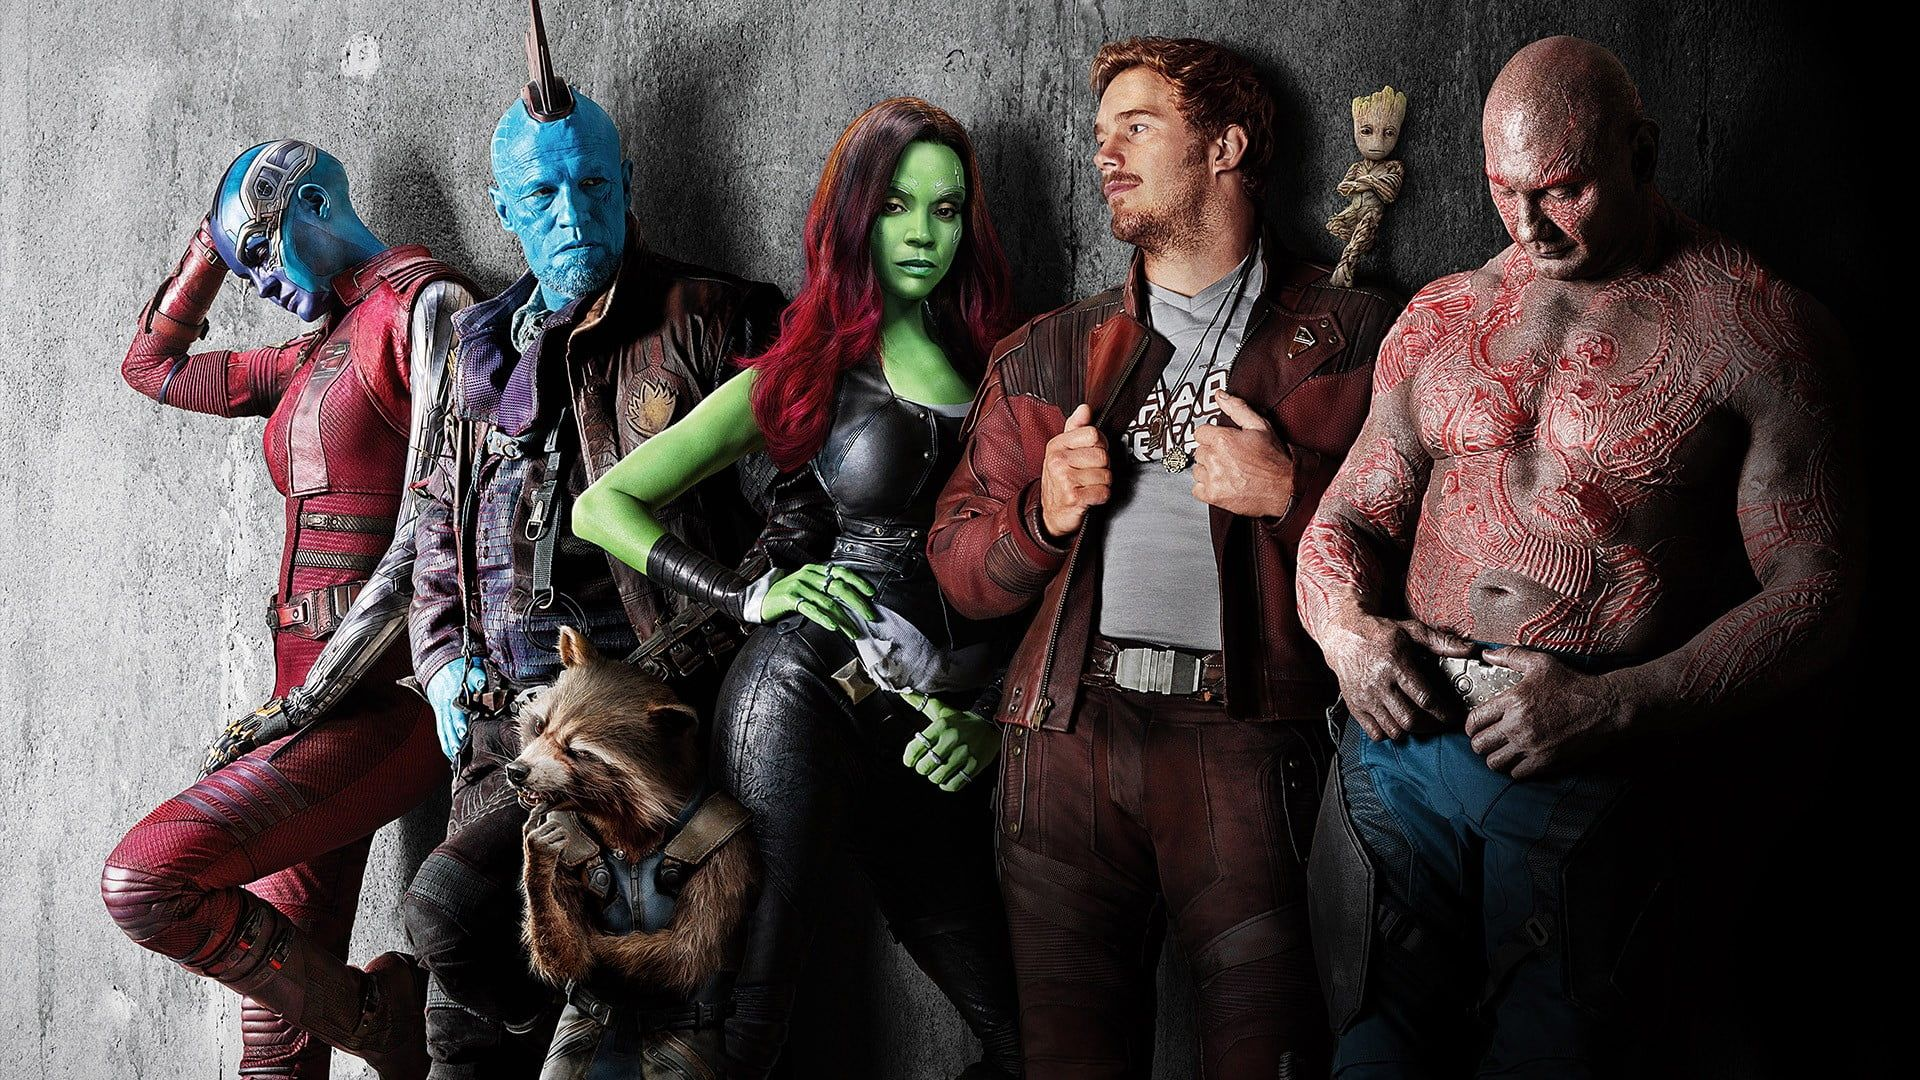 Guardians Of The Galaxy Wallpaper Guardians Of The Galaxy Vol 2 Guardians Of The Galaxy Chris Pratt Zoe Sald Guardians Of The Galaxy Galaxy Movie Wonder Woman